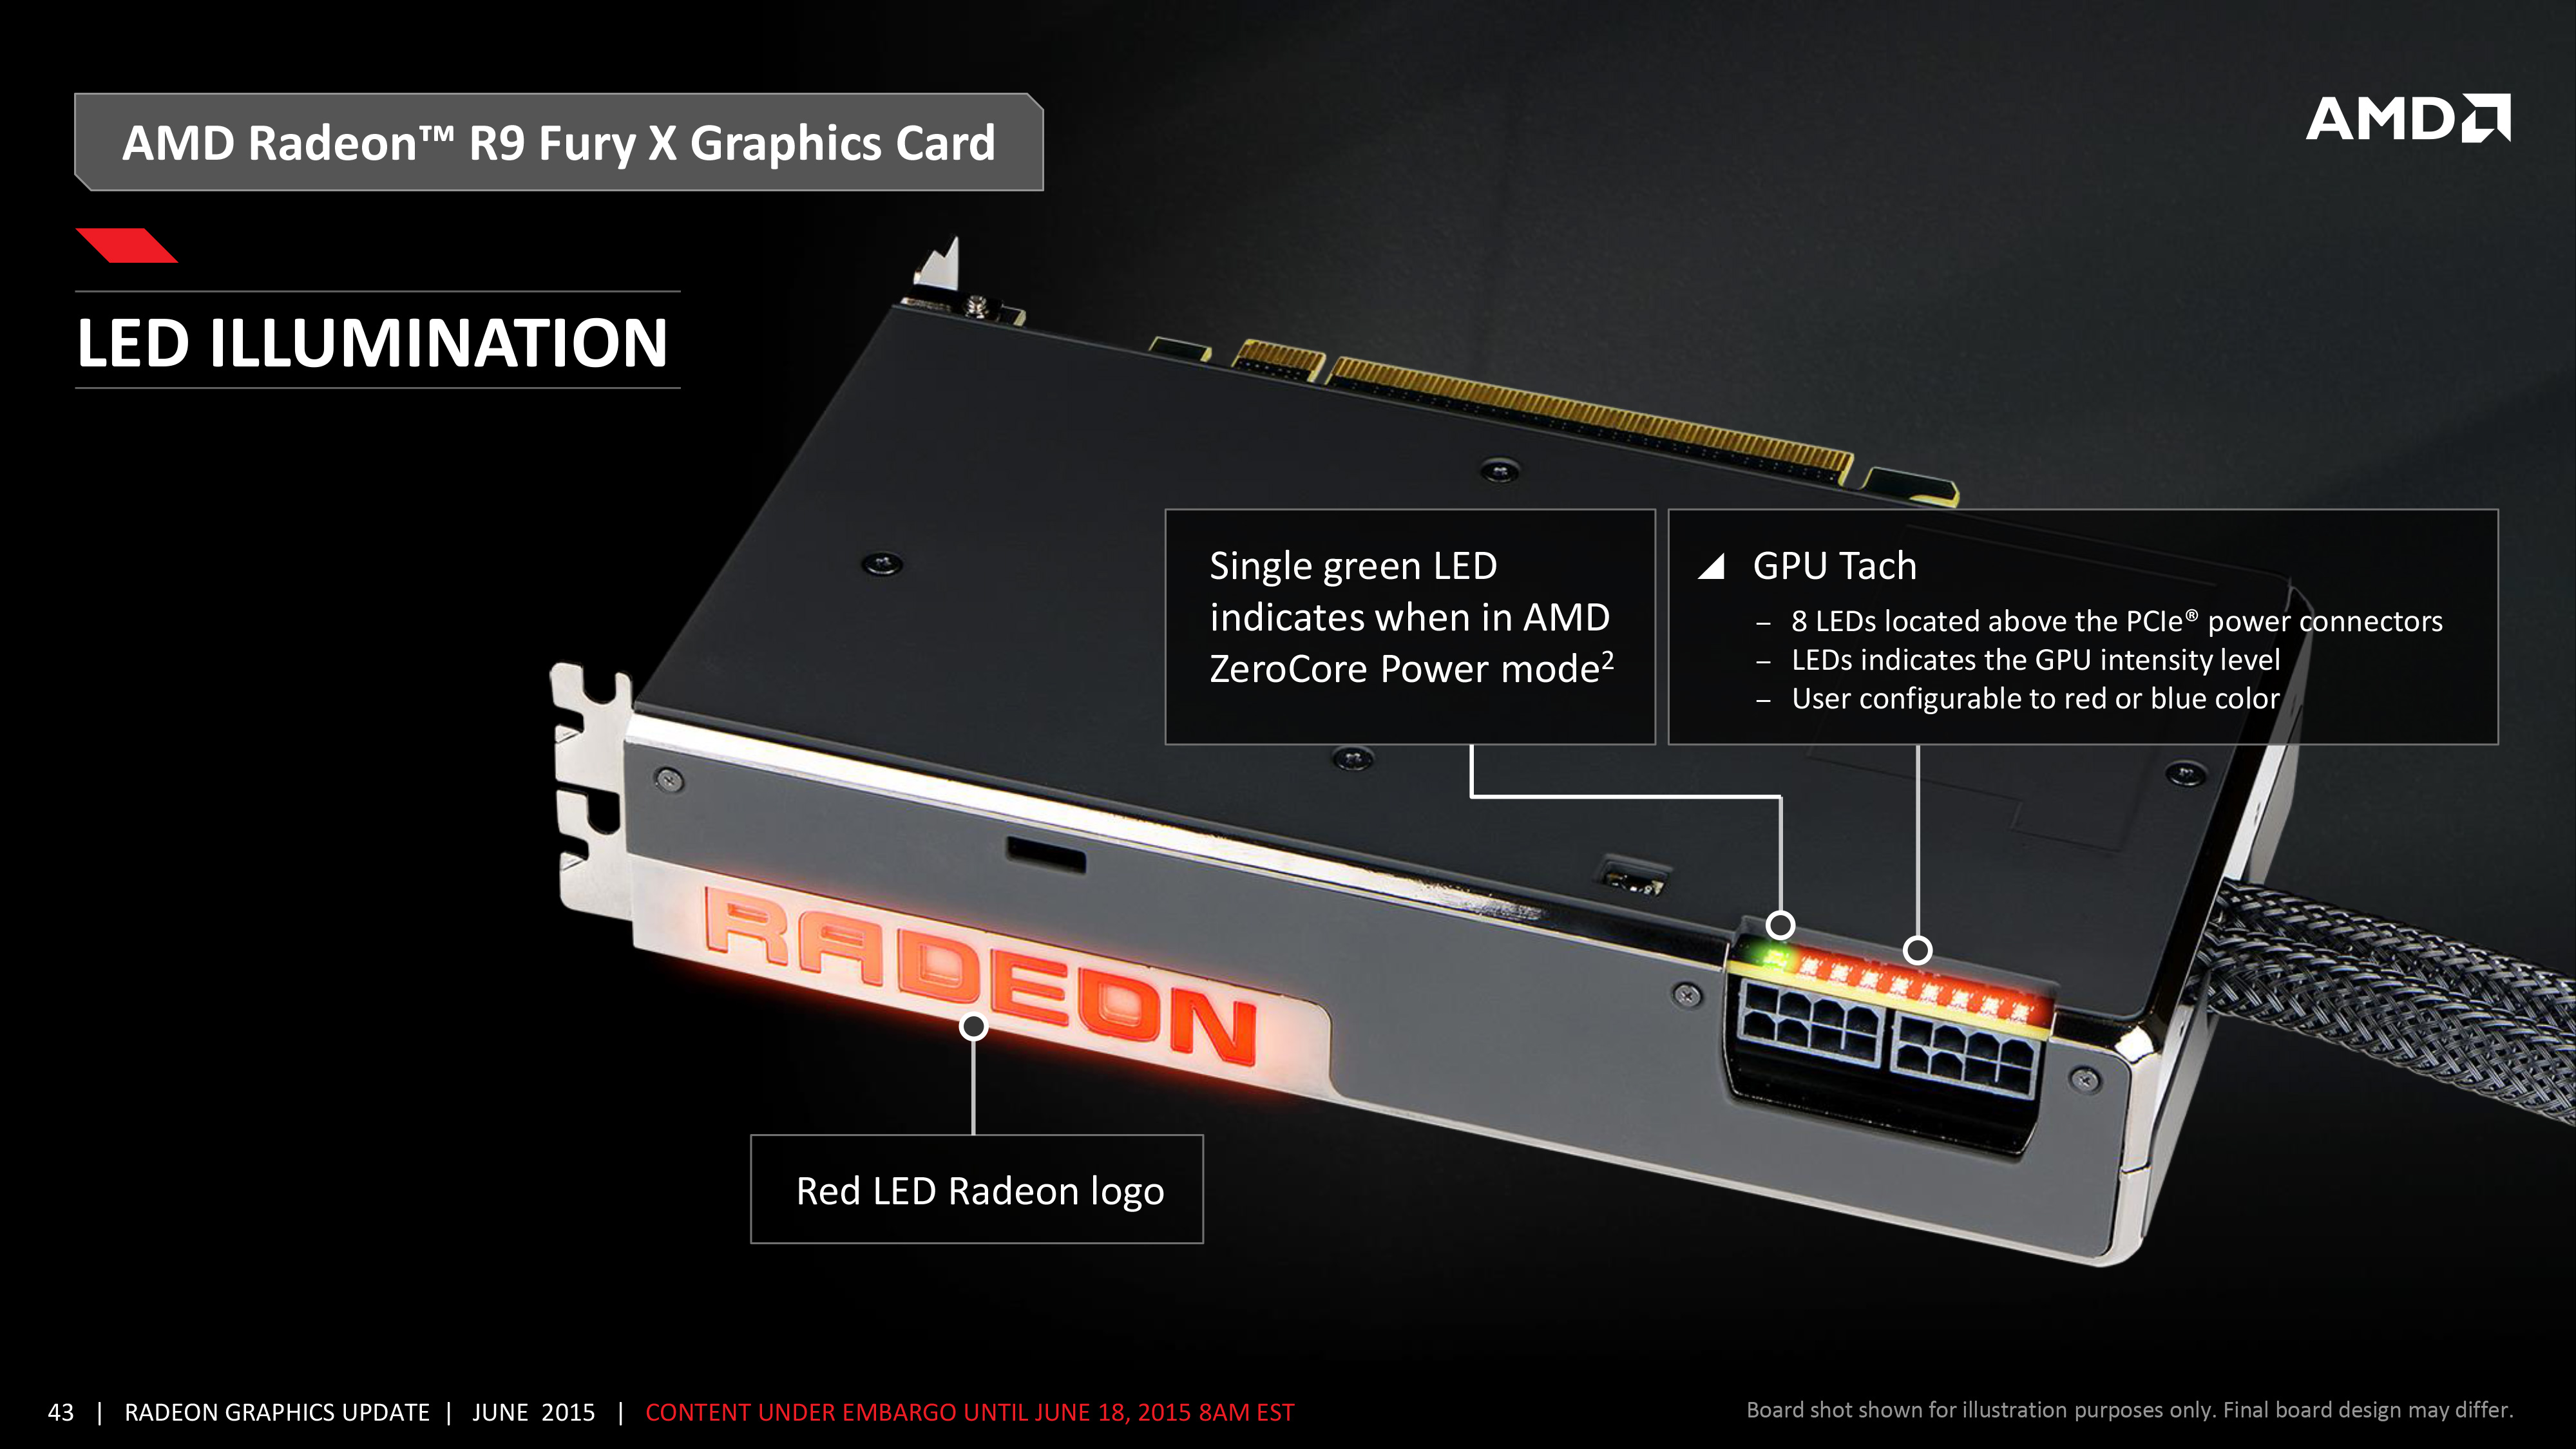 Meet The Radeon R9 Fury X Amd Review Aiming Leds In Parallel Cannot Be Placed Until Color You Cant Select Is Green Theory Because Reserved For Sleep Led Though Practice I Think Its Safe To Point Out That